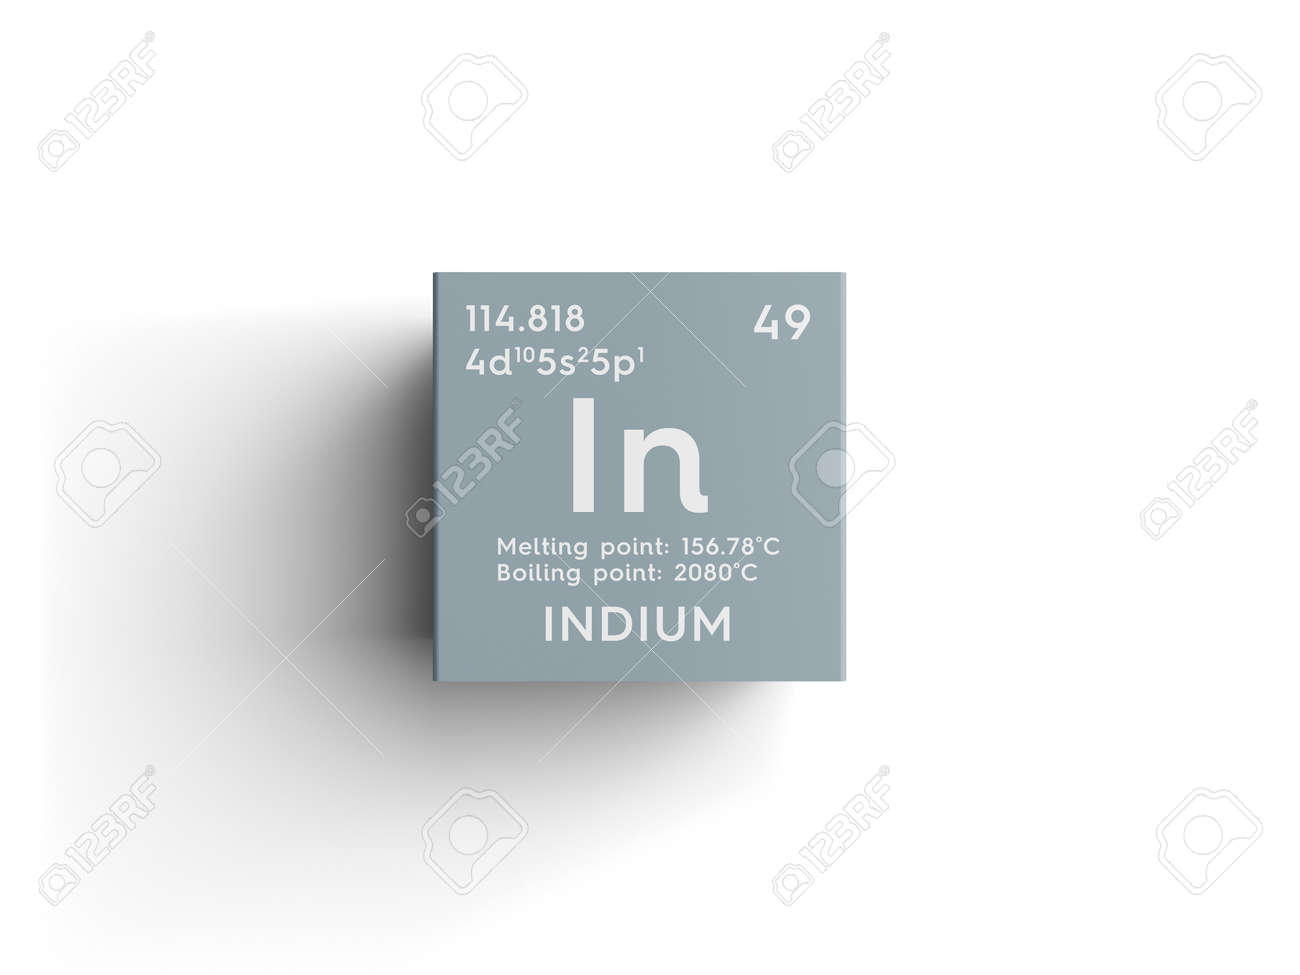 Wallpapers for indium symbol wallpapers showallpapers periodic table indium image collections periodic table images gamestrikefo Gallery